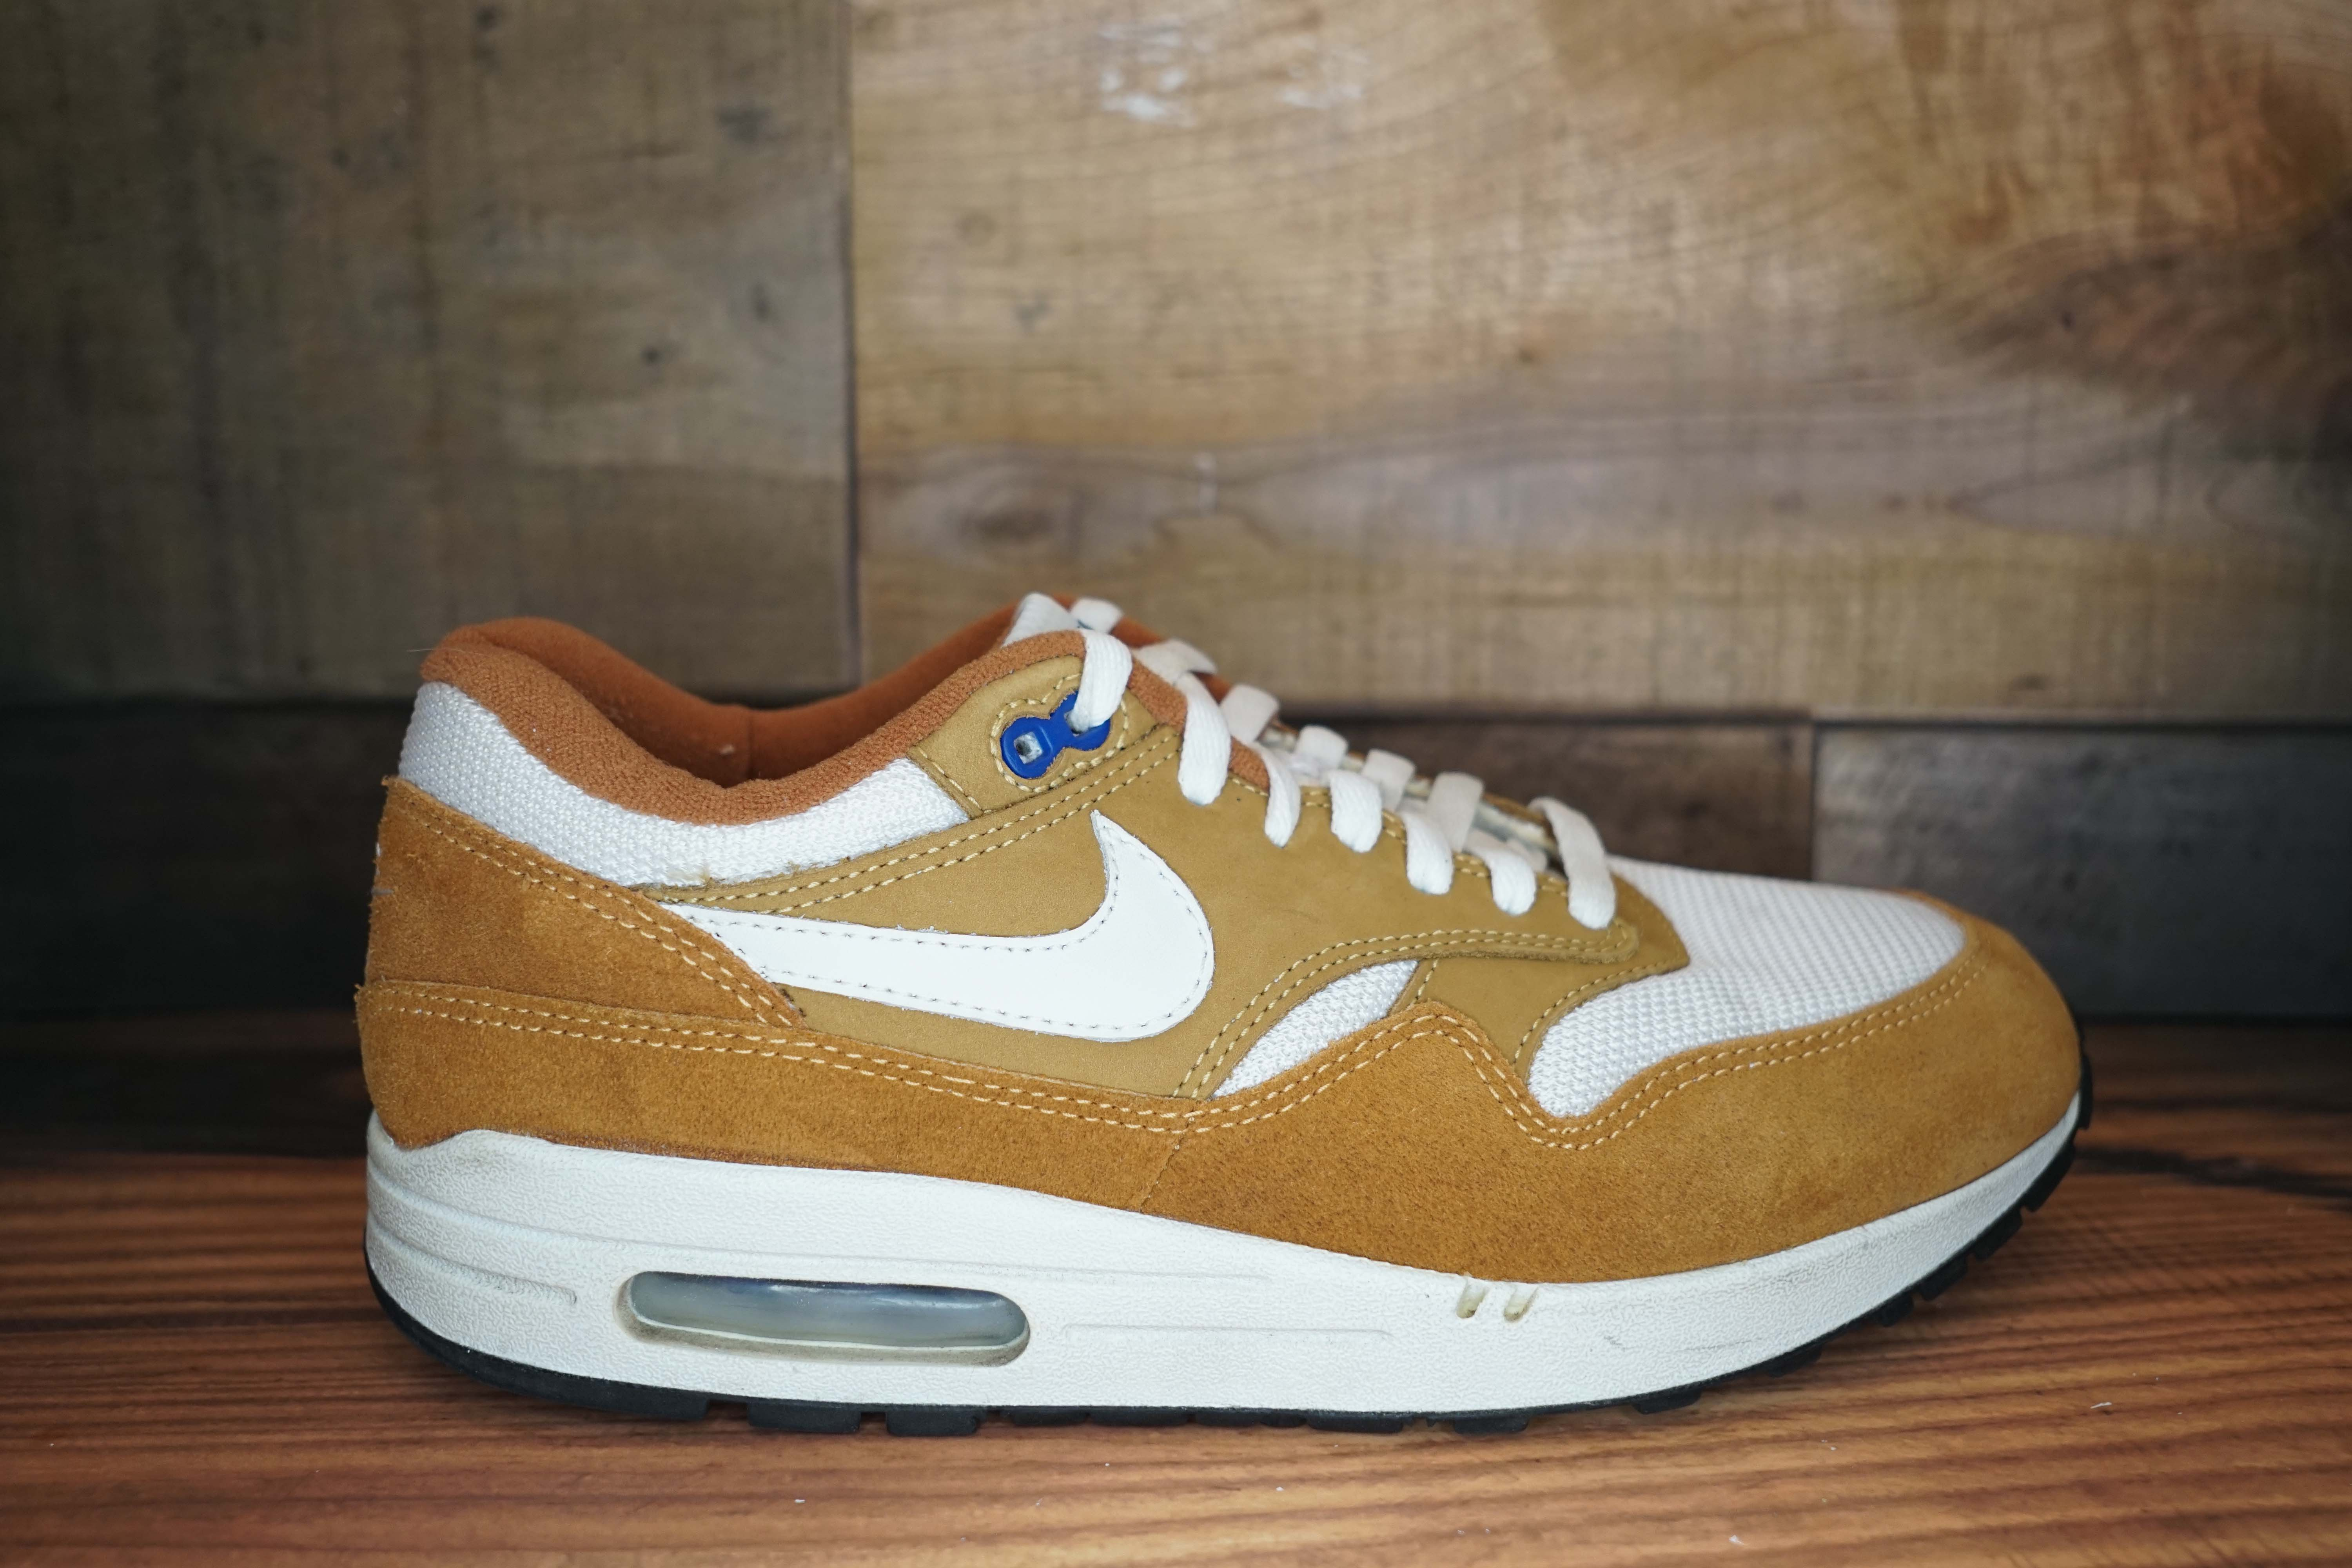 new style 4f419 b8b7c coupon code for nike air max 1 curry 2003 used original e778c 6727a